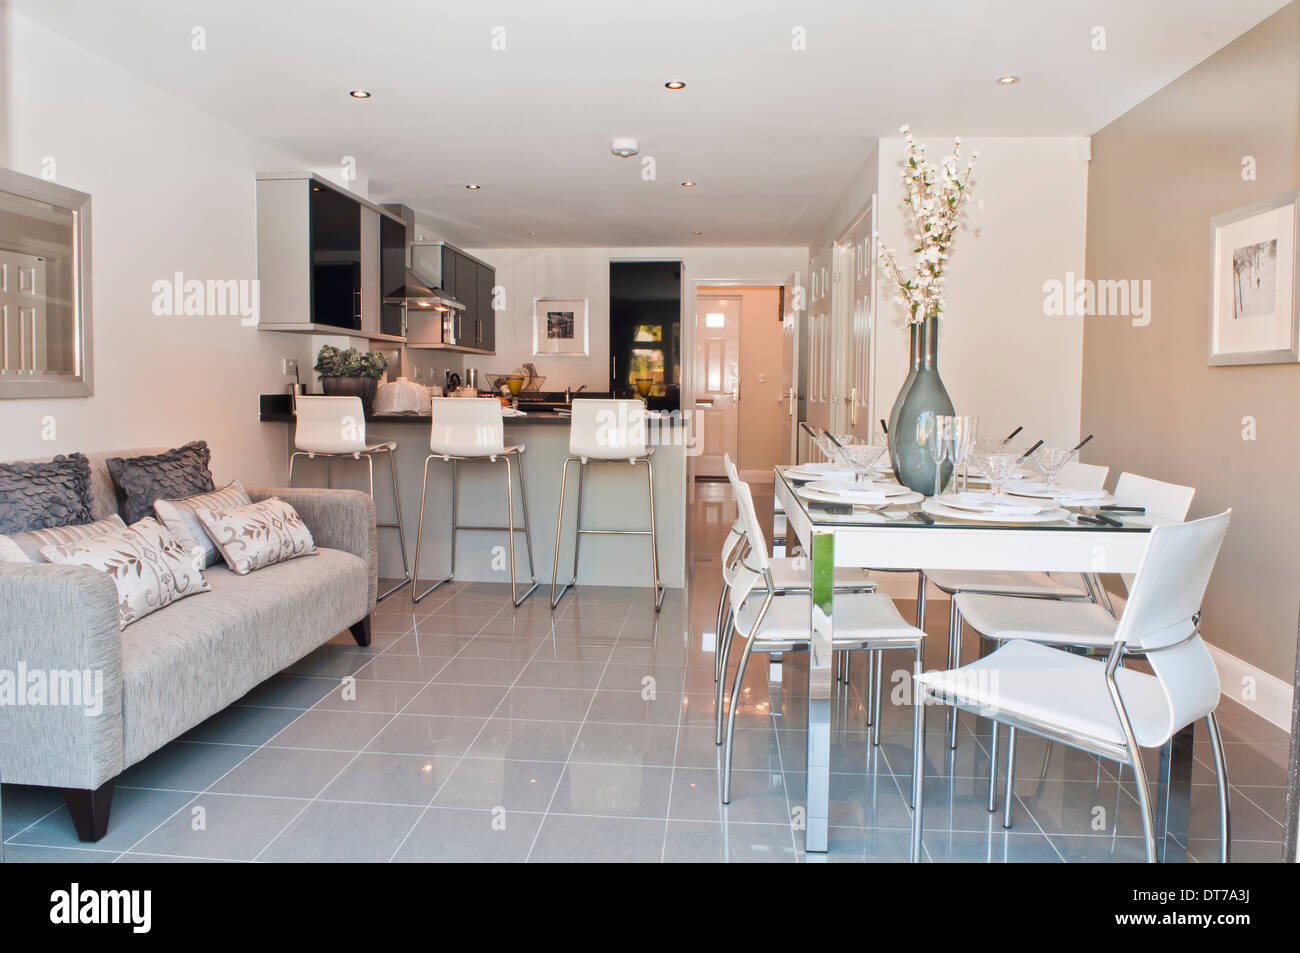 Show Home Kitchen Diner With Sofa Stock Photo 66544454